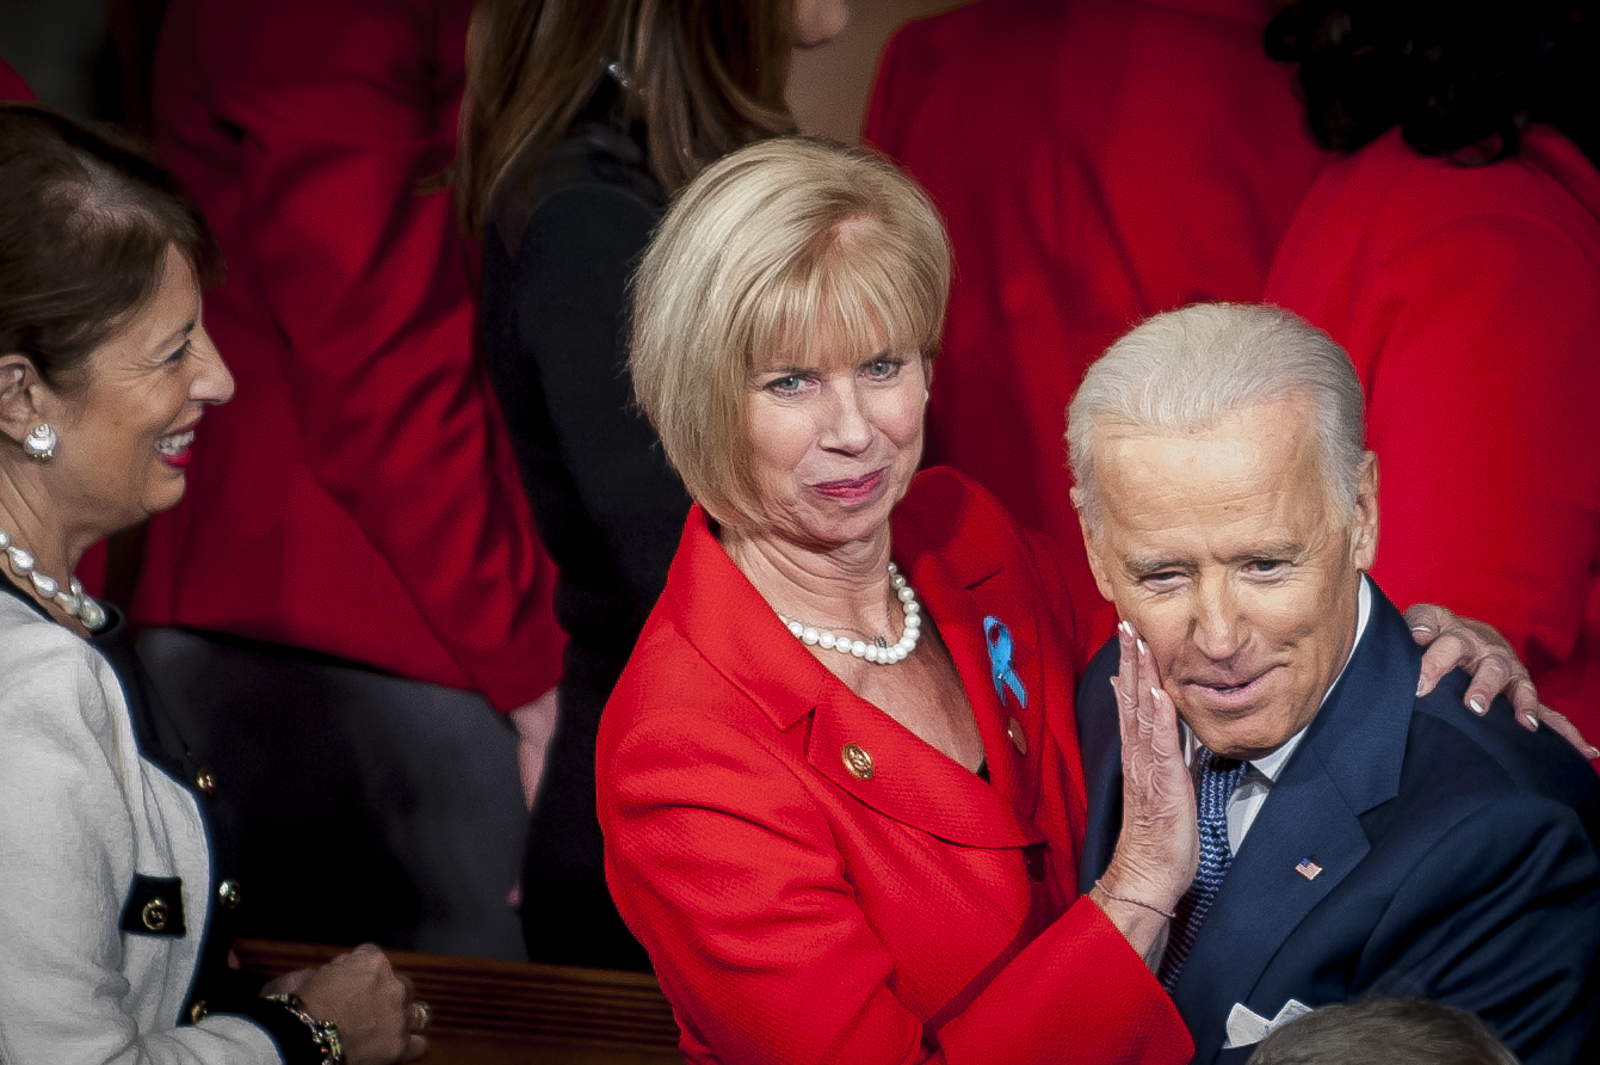 Representative Janice Hahn (D-CA) wipes her lipstick from the cheek of Vice President Joe Biden as he arrives for President Barack Obama's State of the Union address to a joint session of Congress at the Capitol in Washington, D.C., U.S., on Tuesday, Jan. 28, 2014. Photographer: Pete Marovich/Bloomberg